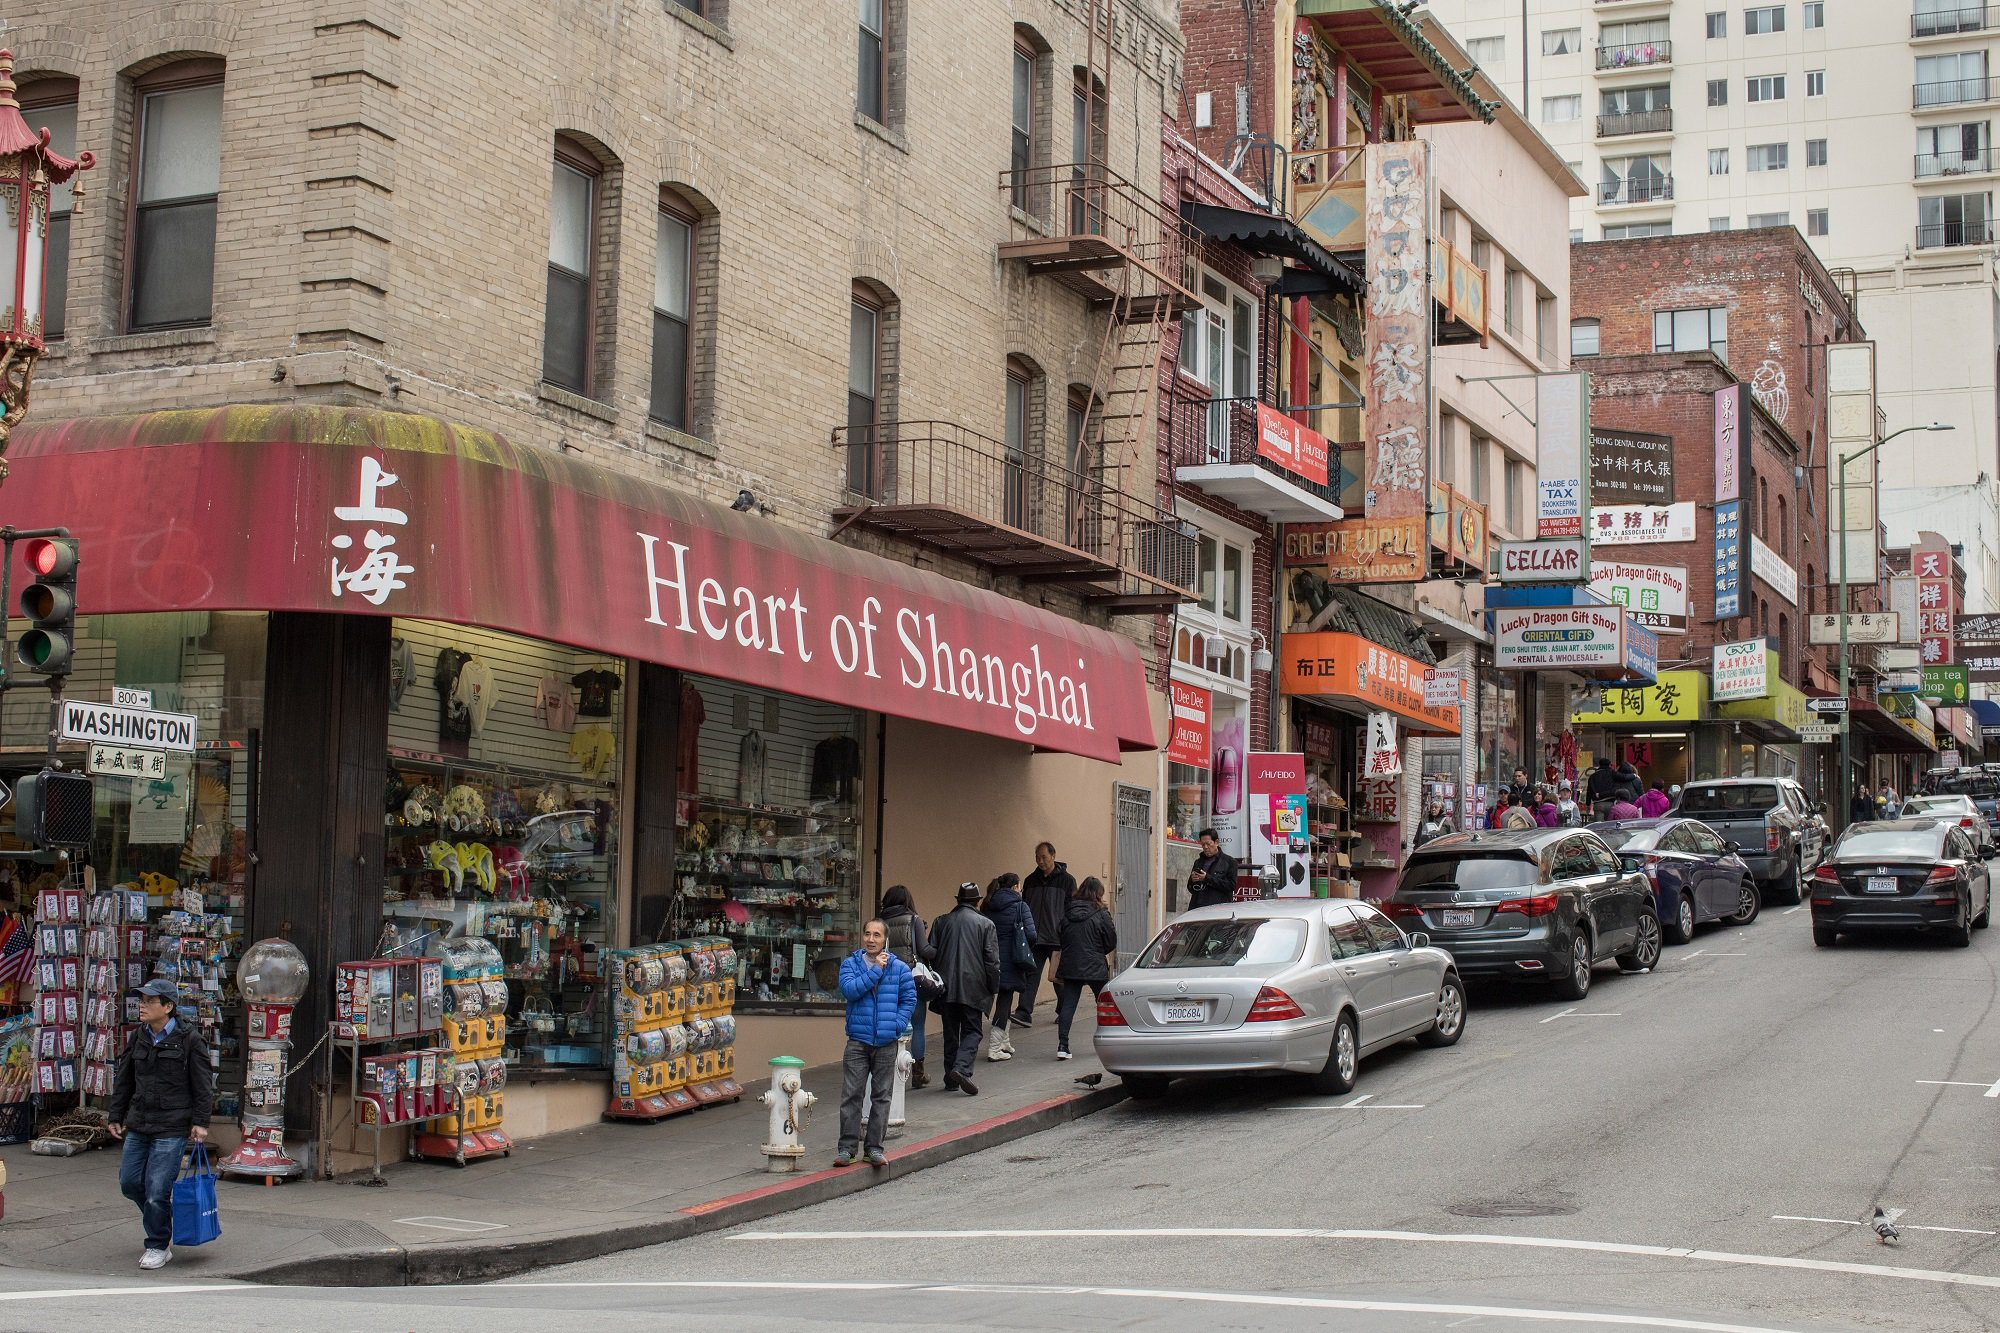 Photo: San Francisco's Chinatown, the most densely populated urban area west of Manhattan. Credit: Jessie Parks/ODI, 2018